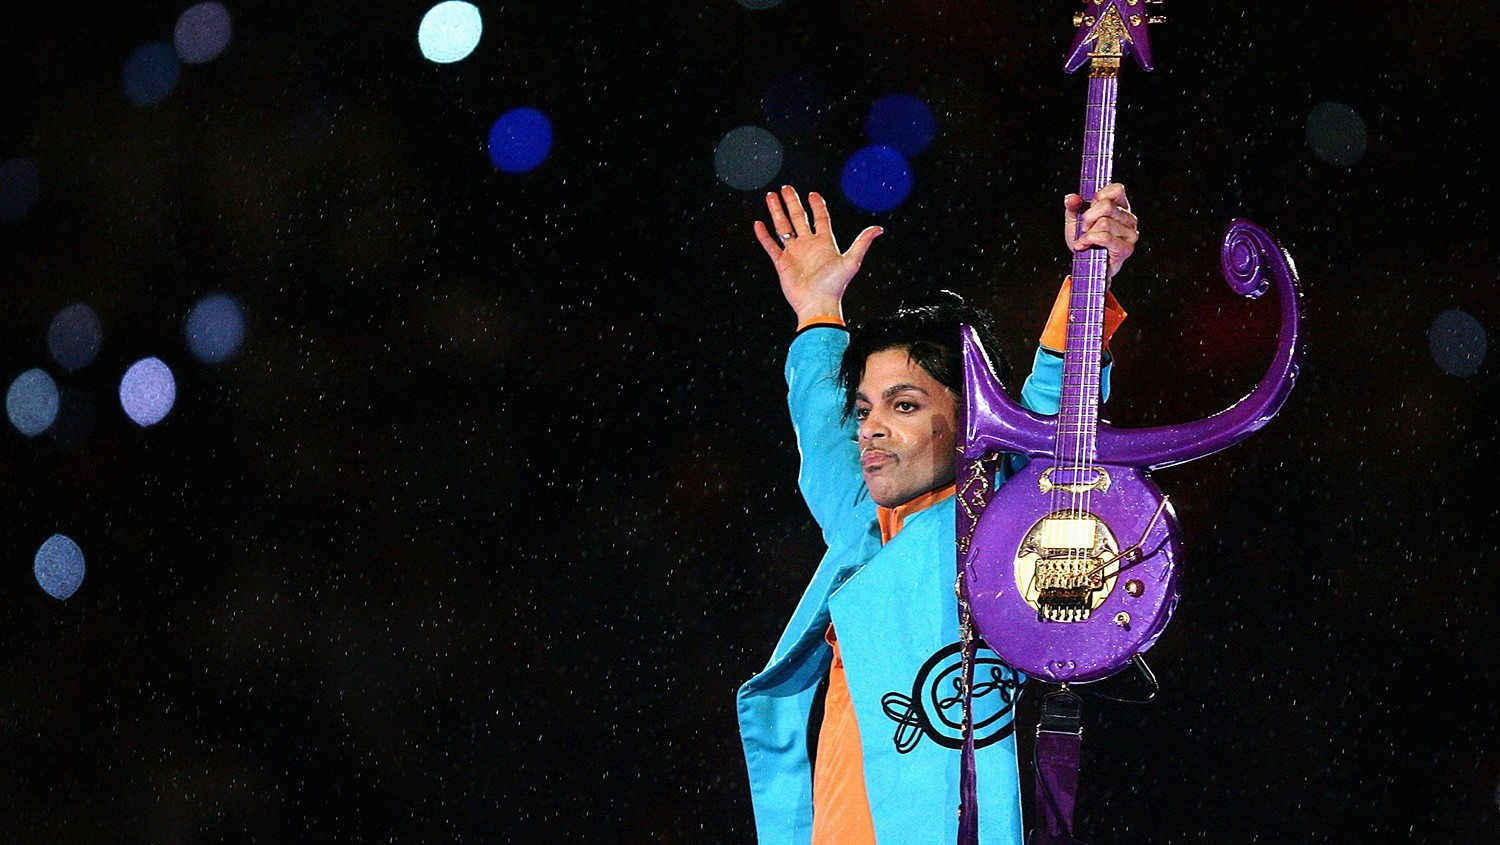 """Prince performs during the """"Pepsi Halftime Show"""" at Super Bowl XLI between the Indianapolis Colts and the Chicago Bears on Feb. 4, 2007 at Dolphin Stadium in Miami Gardens, Fla."""